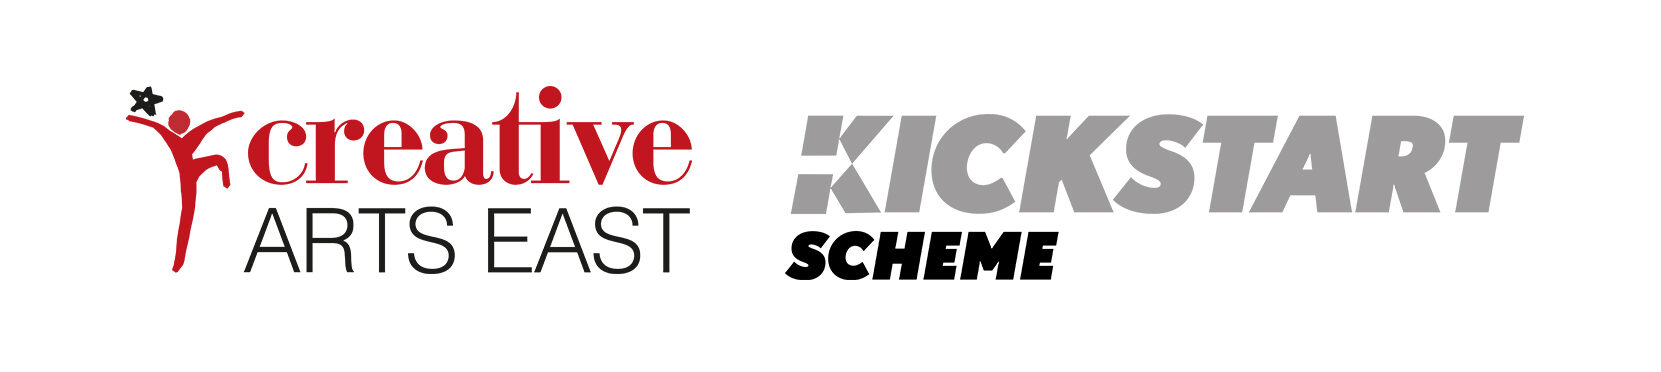 The white banner is landscape and features two logos. From left to right, they are 'Creative Arts East' and the 'Kickstart Scheme.'